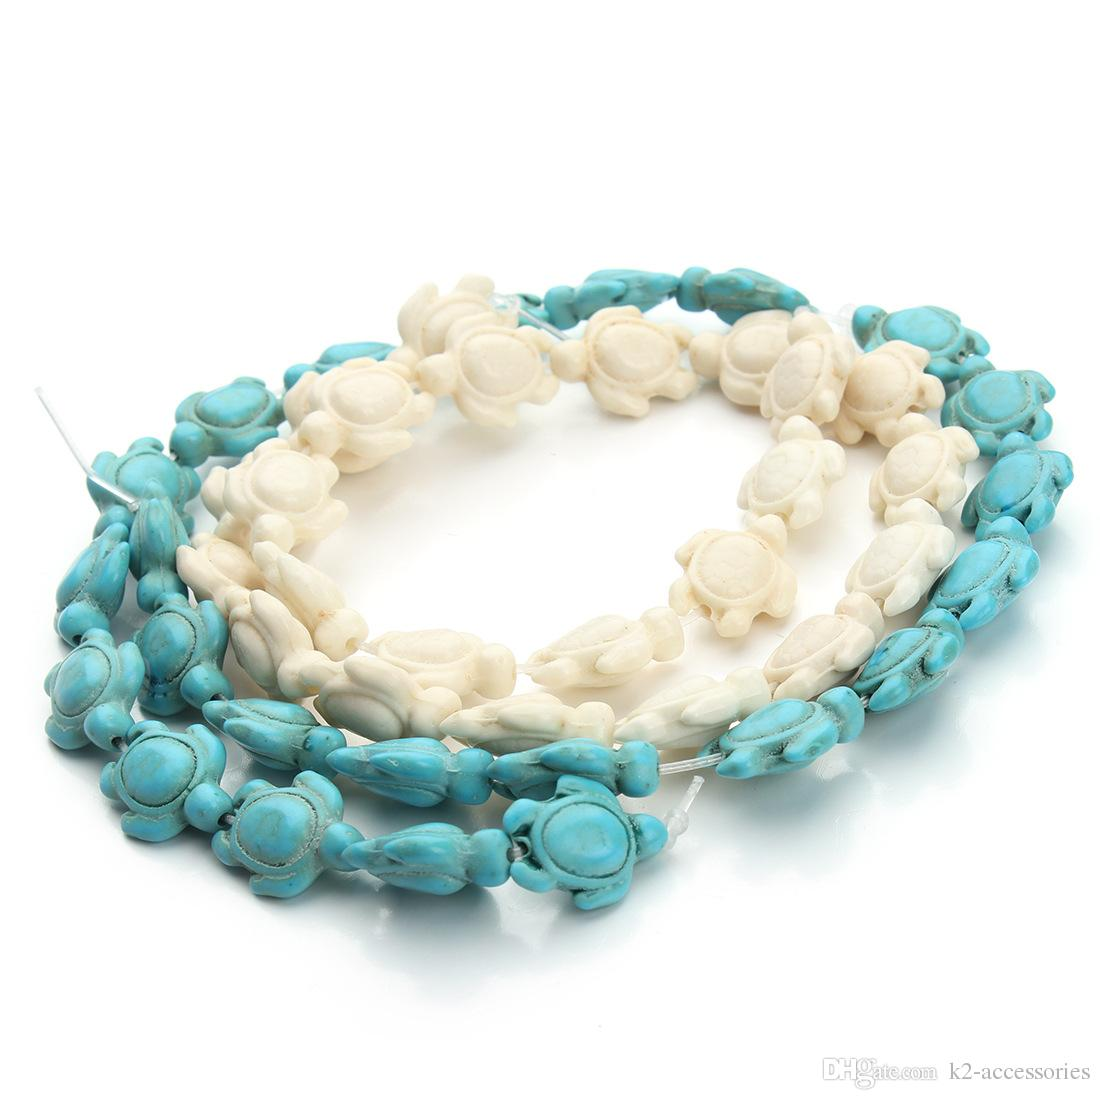 1 Strand White Howlite Turquoise Carved Skull Spacer Beads Jewelry Decor